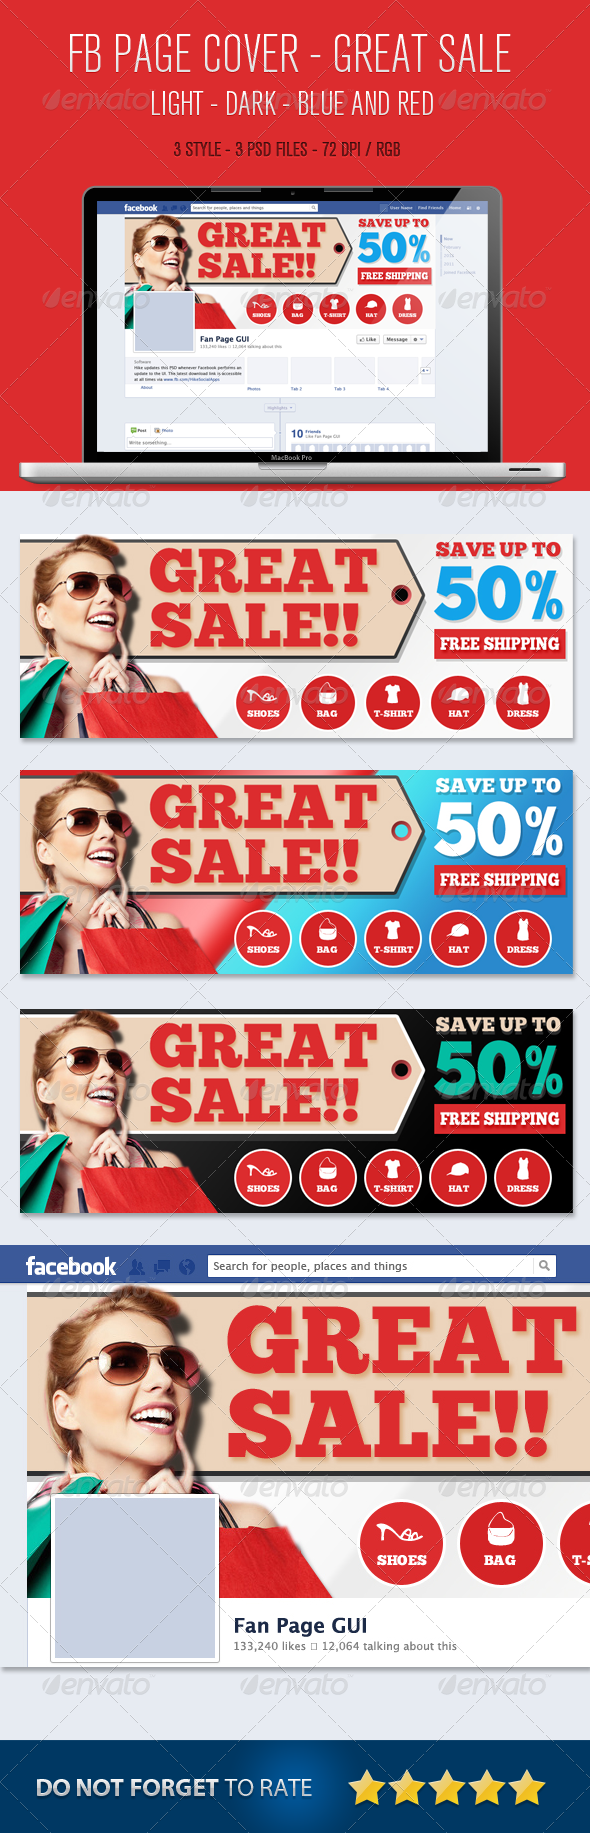 GraphicRiver Fb Cover E-Commerse Great Sale 5233594